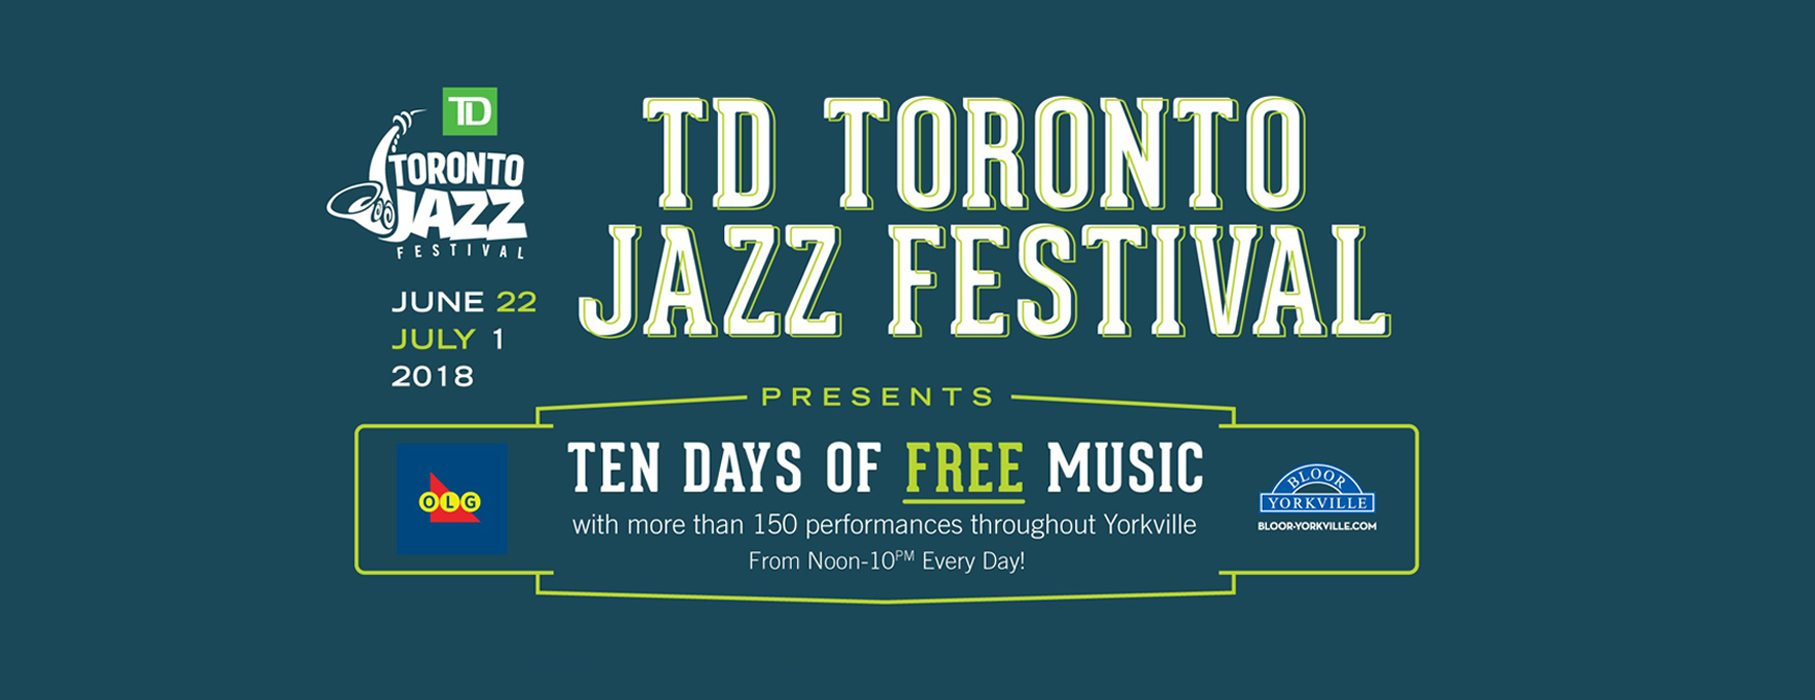 TD TORONTO JAZZ FESTIVAL TRANSFORMS BLOOR-YORKVILLE INTO A SANCTUARY OF SOUL AND JAZZ WITH FREE PERFORMANCES!